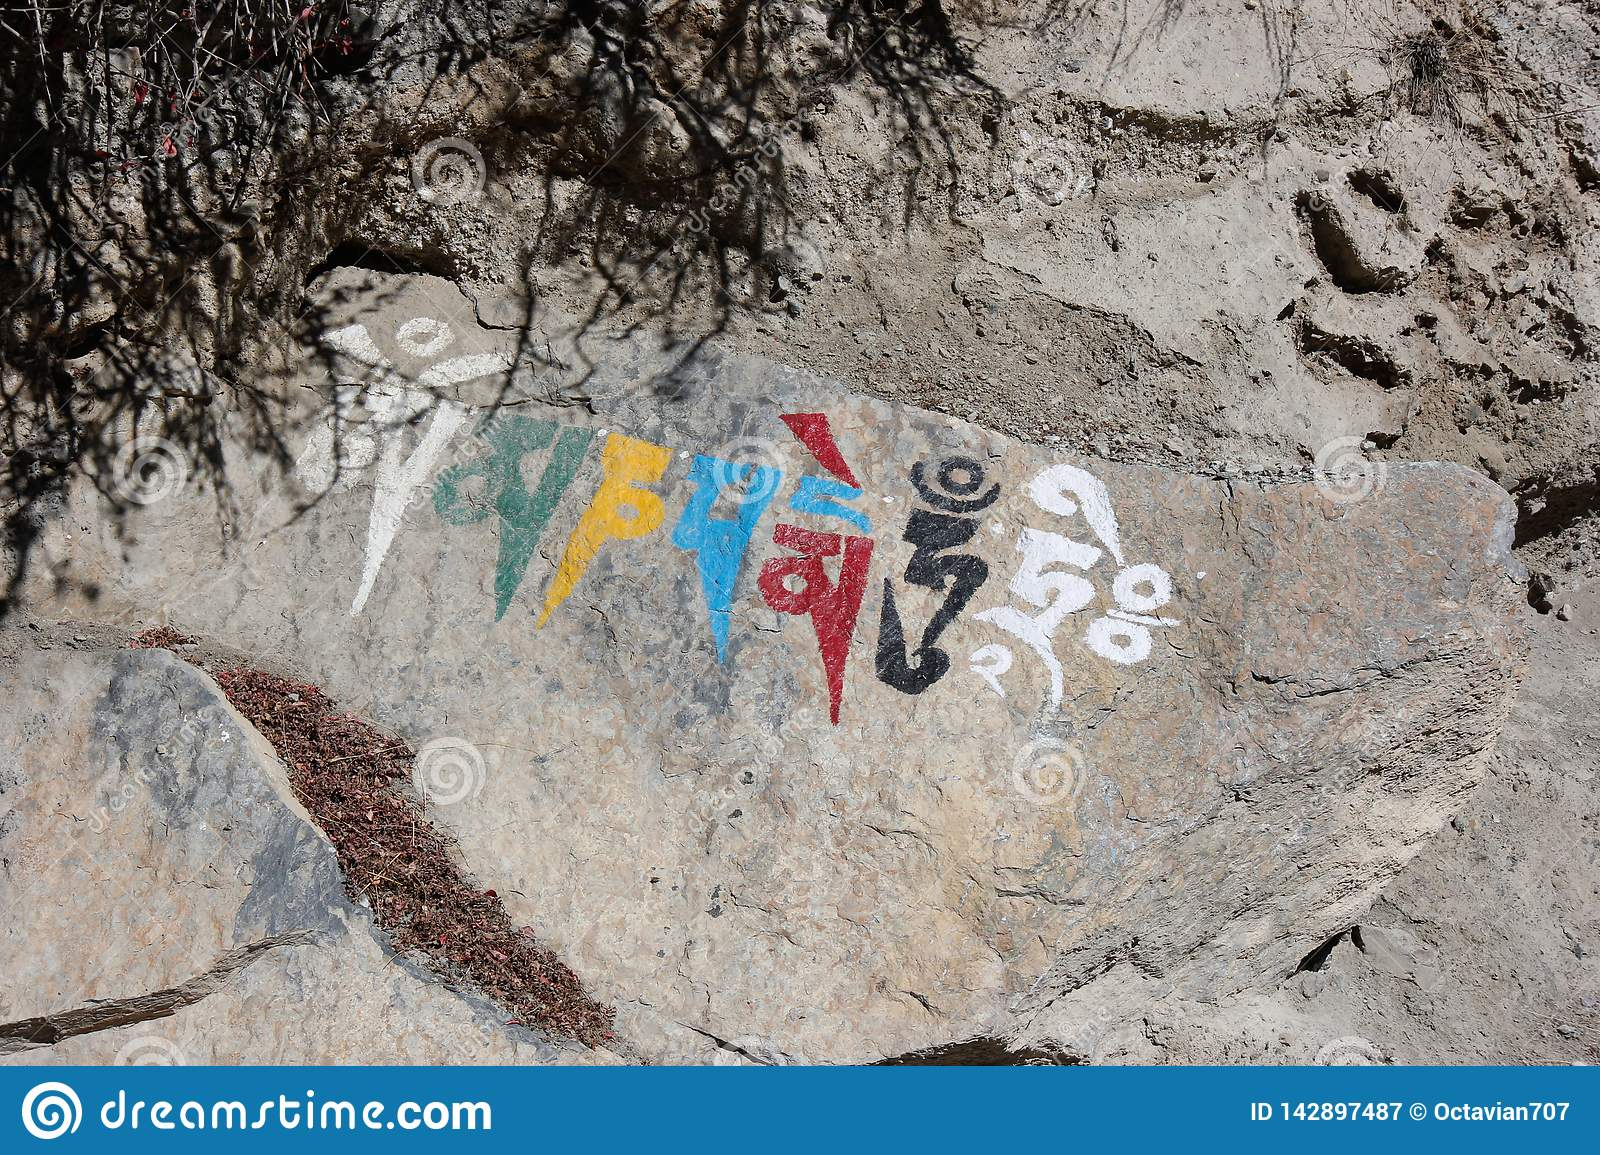 Nepalese religious symbol writing on a rock